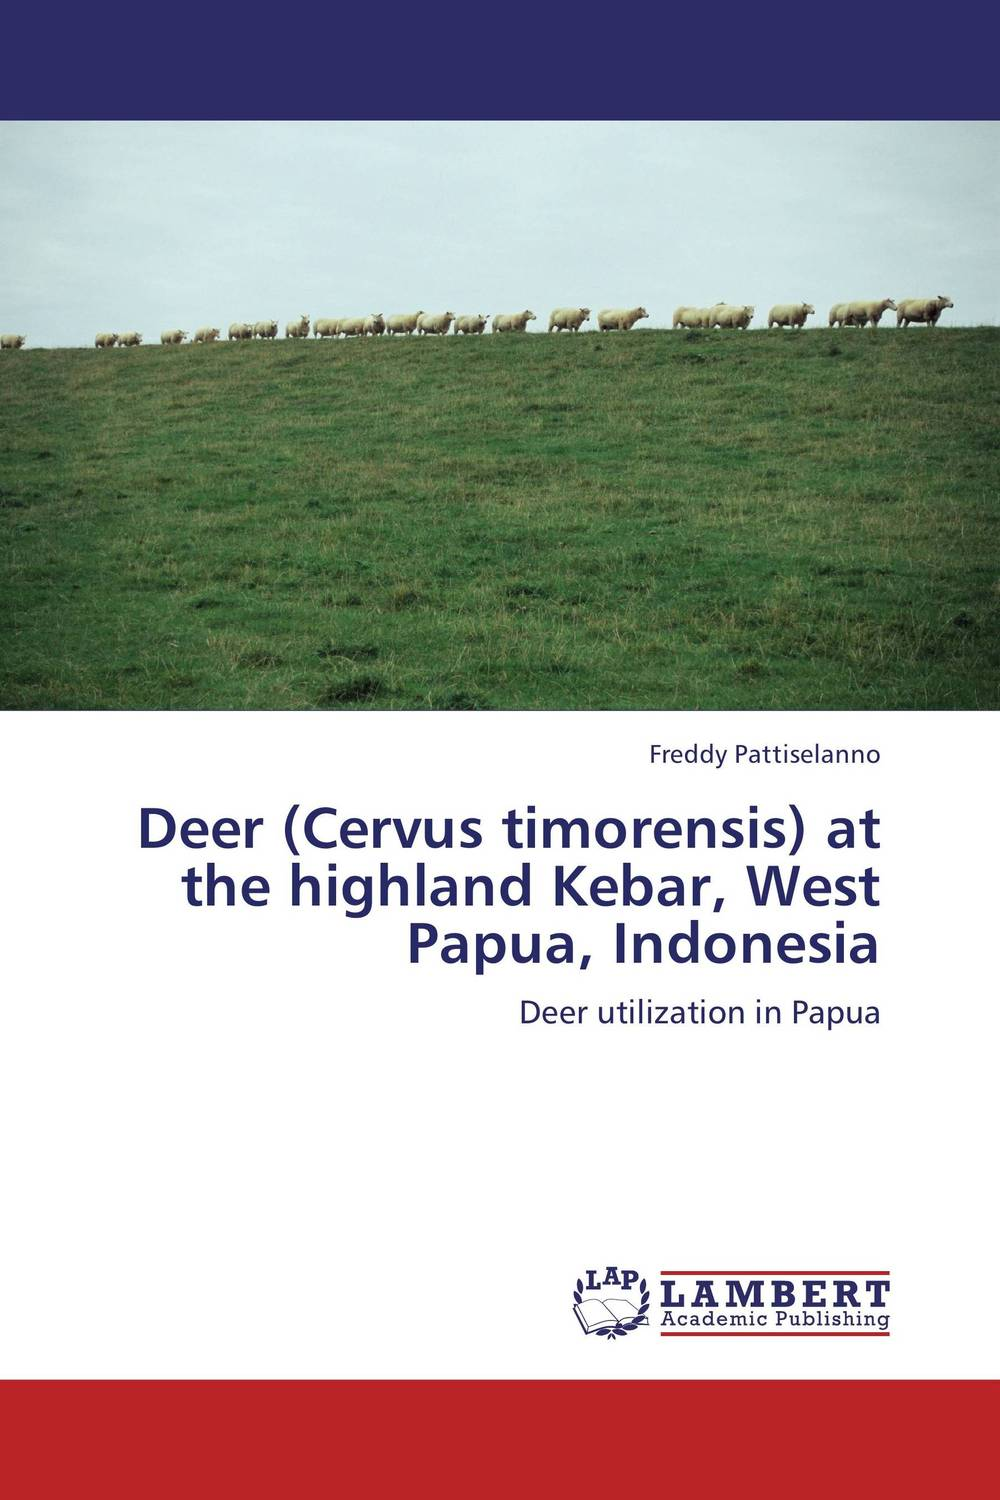 Deer (Cervus timorensis) at the highland Kebar, West Papua, Indonesia dr wax